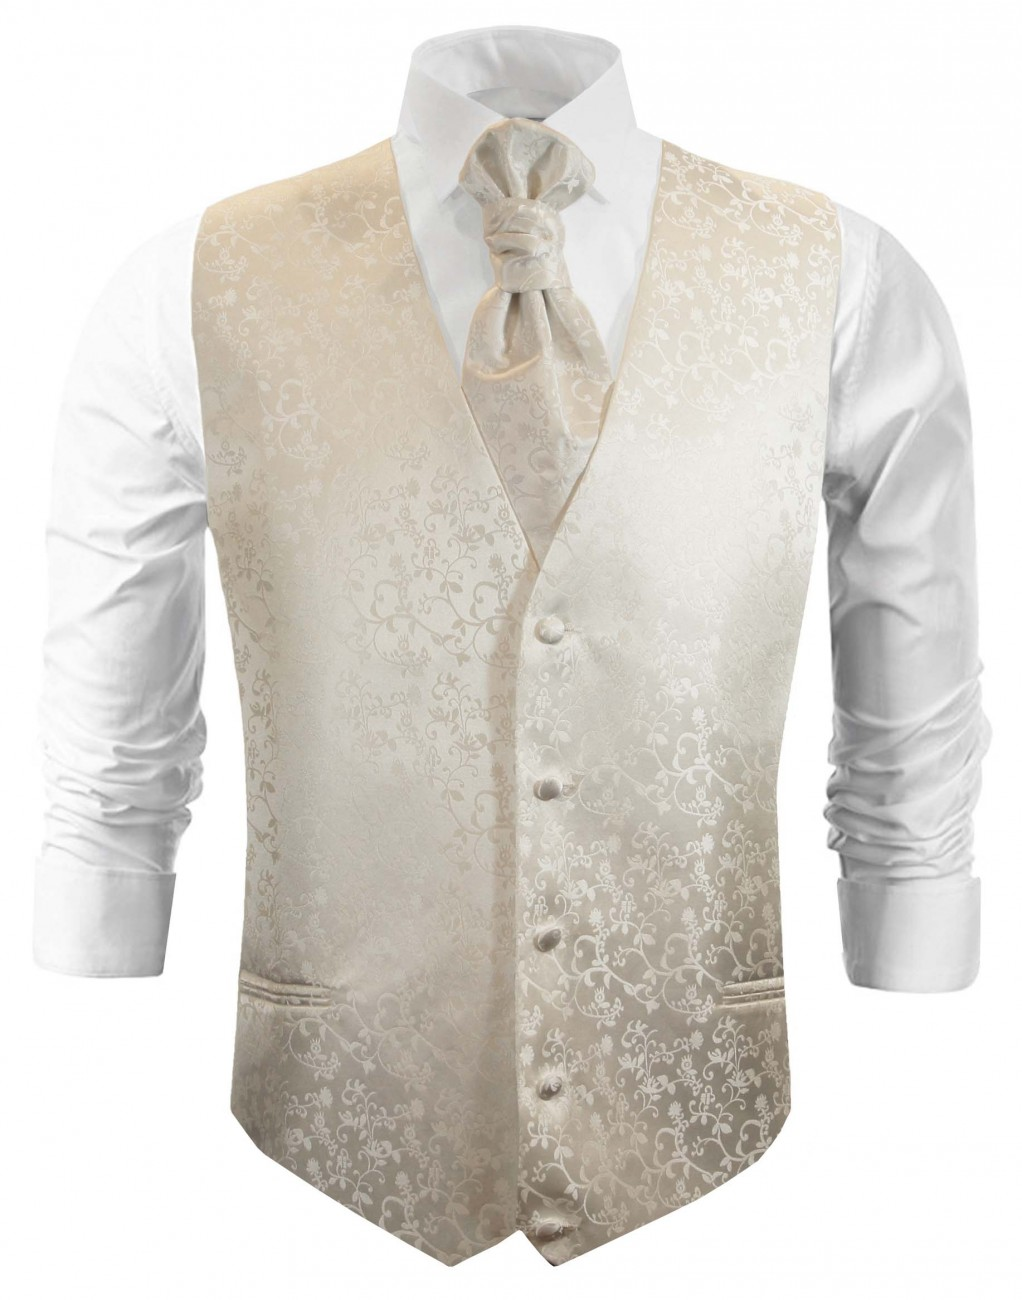 Ivory floral wedding vest waistcoat with cravat